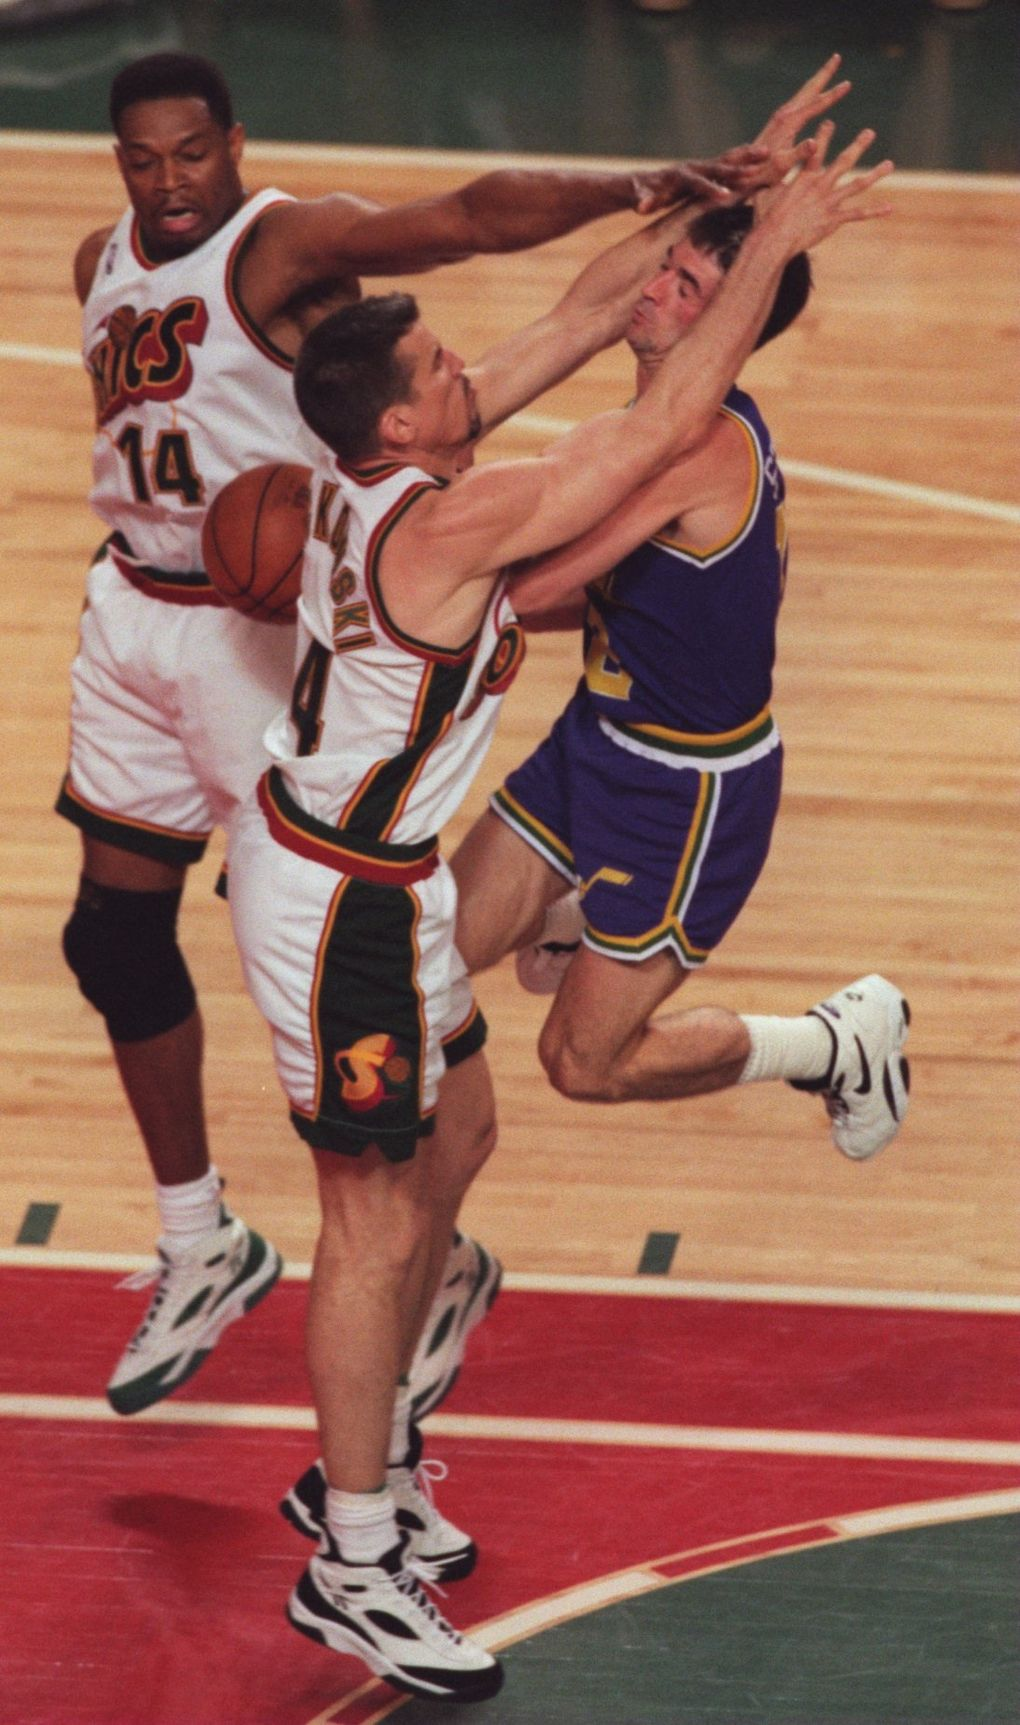 Sonics center Frank Brickowski defends against Utah point guard John Stockton in Game 7 of the Western Conference finals. (Tom Reese / The Seattle Times)